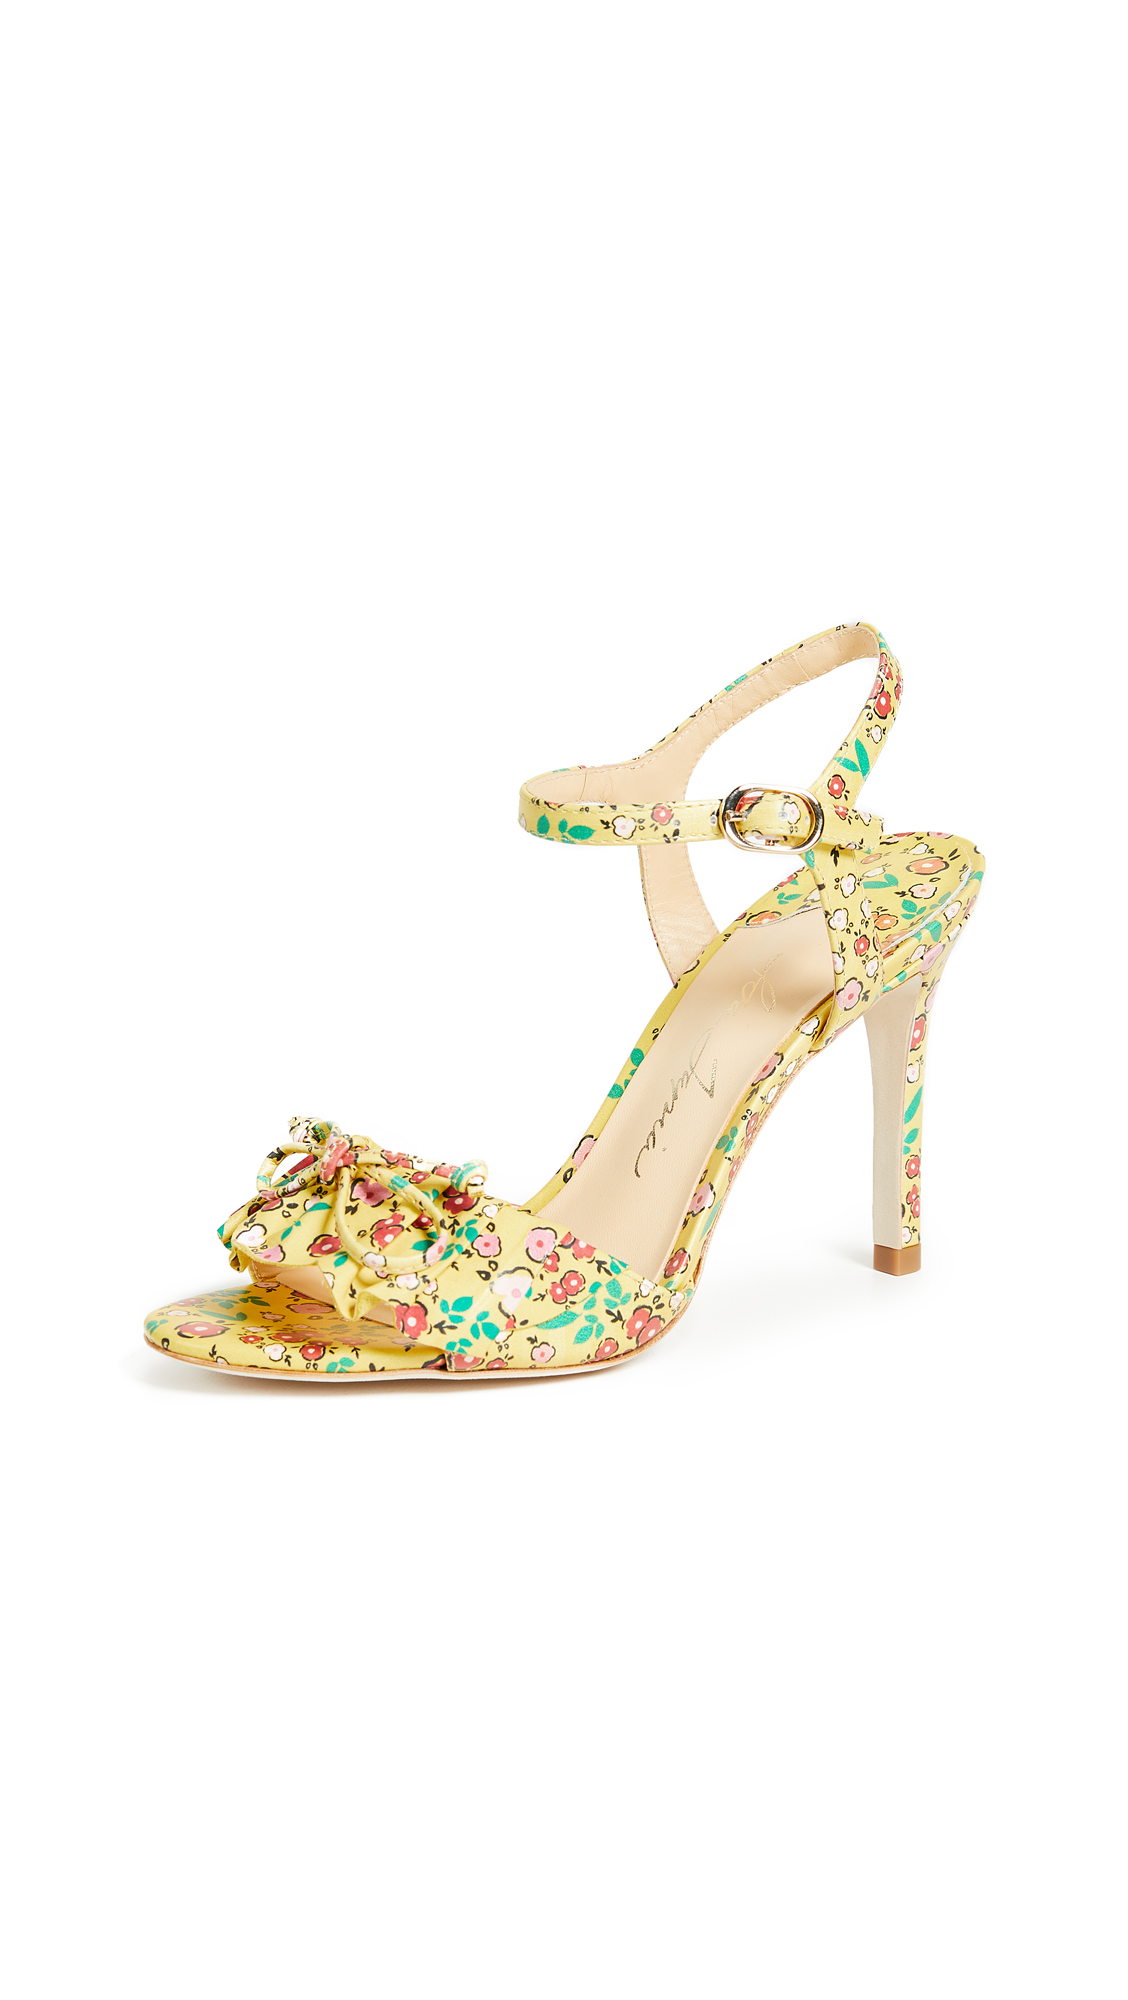 Isa Tapia Evie Sandals - Canary Yellow Floral Print